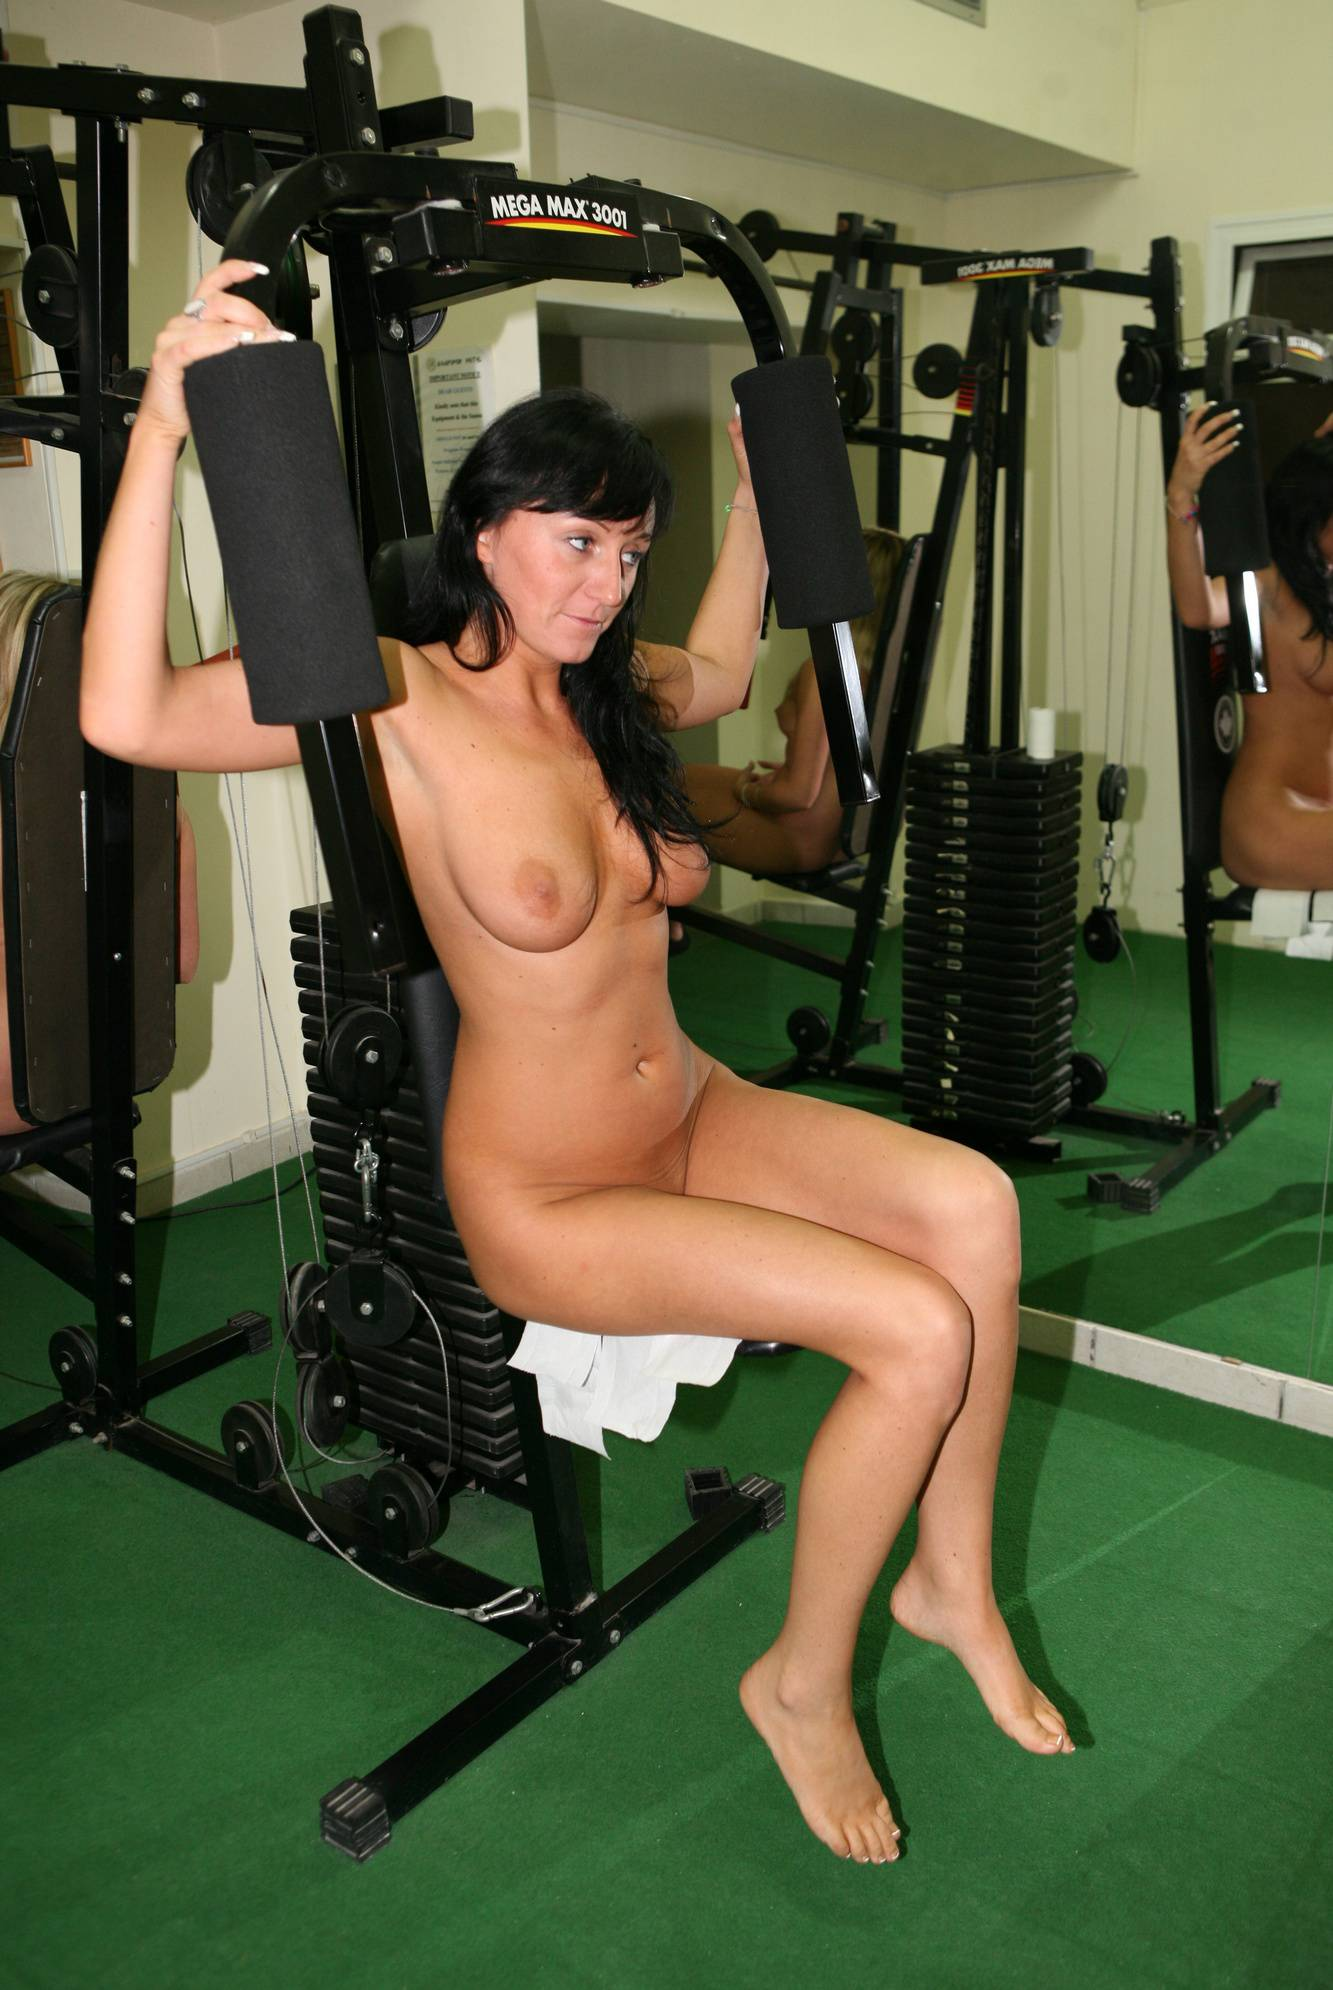 Nudist Pictures Cyprus Aerobic Work Out - 2